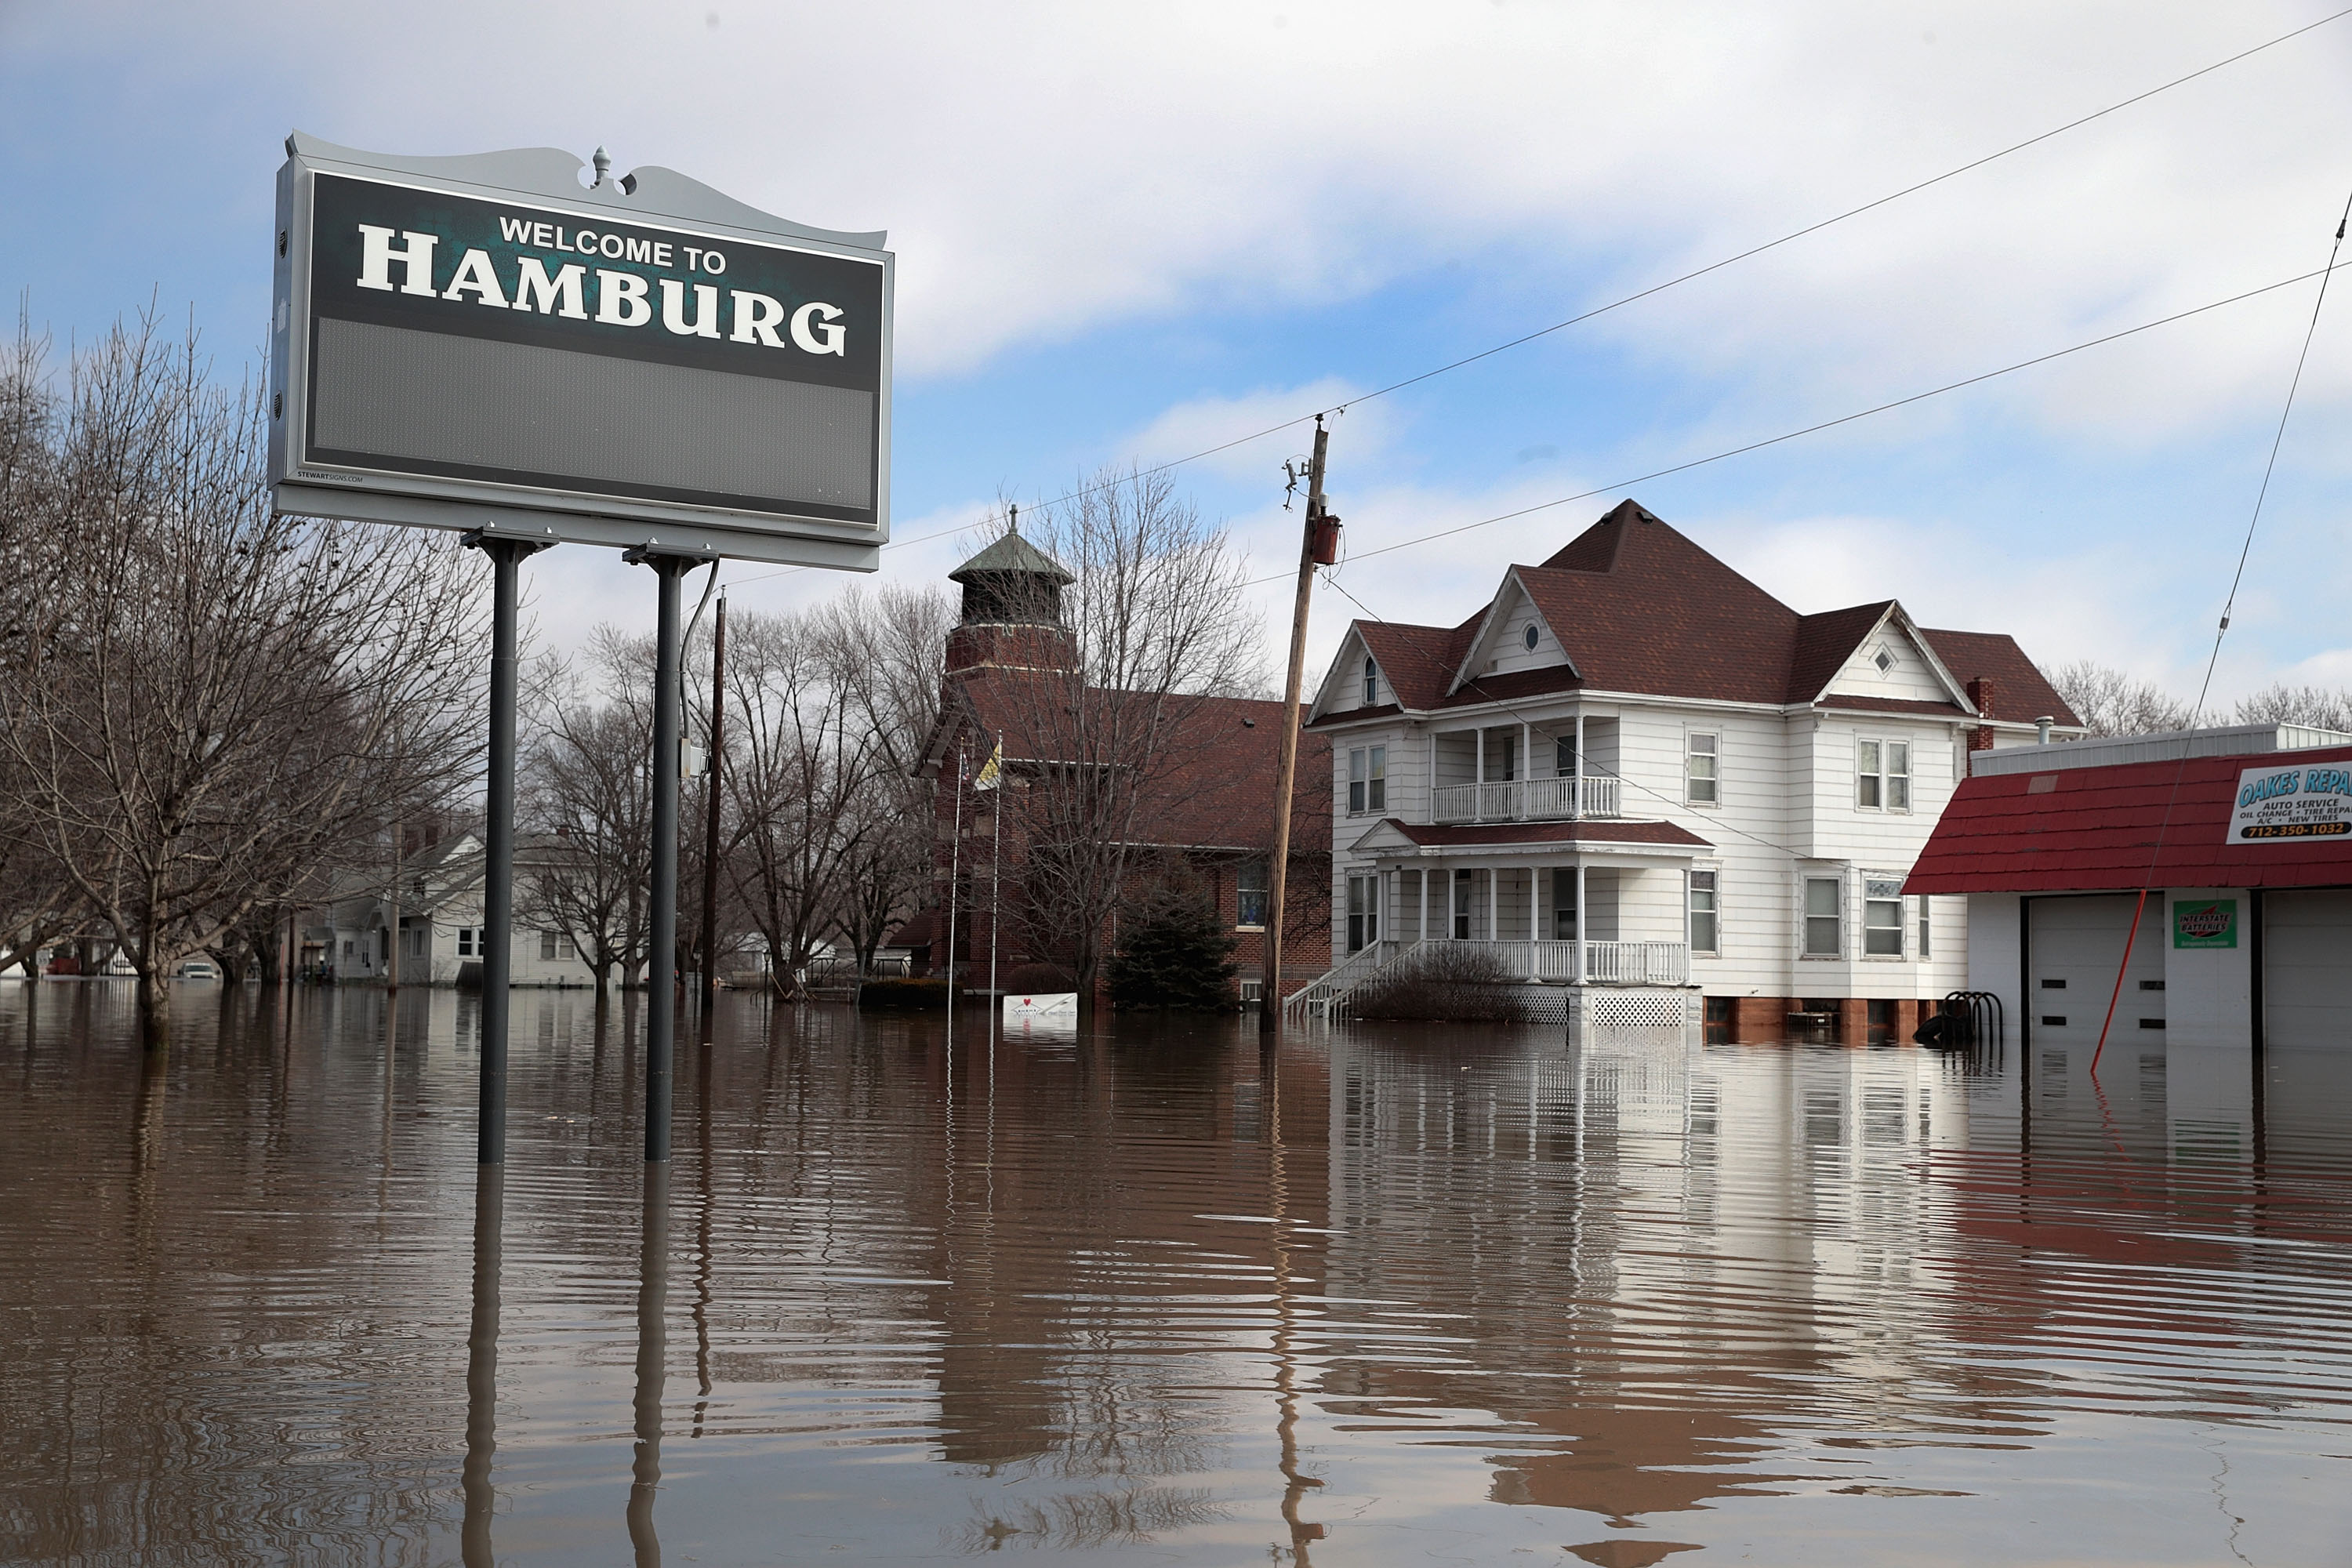 """HAMBURG, IOWA - MARCH 20:  A home sits in flood water on March 20, 2019 in Hamburg, Iowa. Although flood water in the town has started to recede many homes and businesses remain surrounded by water. Several Midwest states are battling some of the worst flooding they have experienced in decades as rain and snow melt from the recent """"bomb cyclone"""" has inundated rivers and streams. At least three deaths have been linked to the flooding.  (Photo by Scott Olson/Getty Images)"""